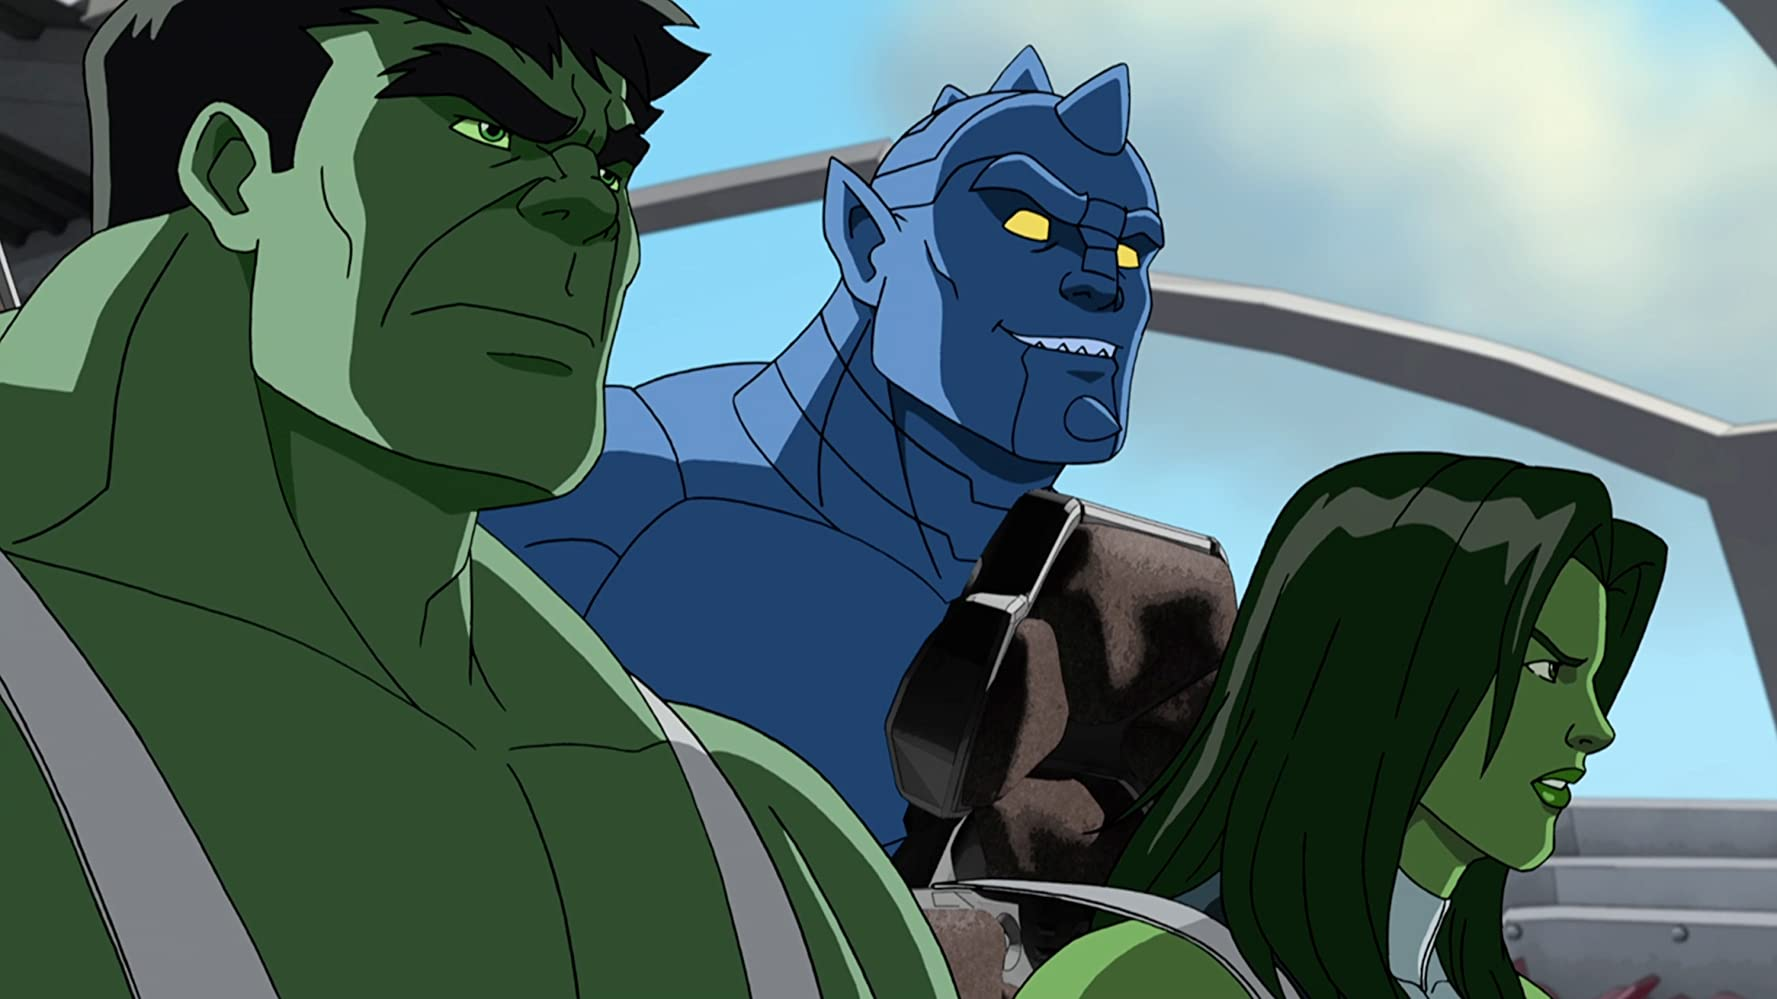 Hulk and the Agents of S.M.A.S.H. Season 1 2